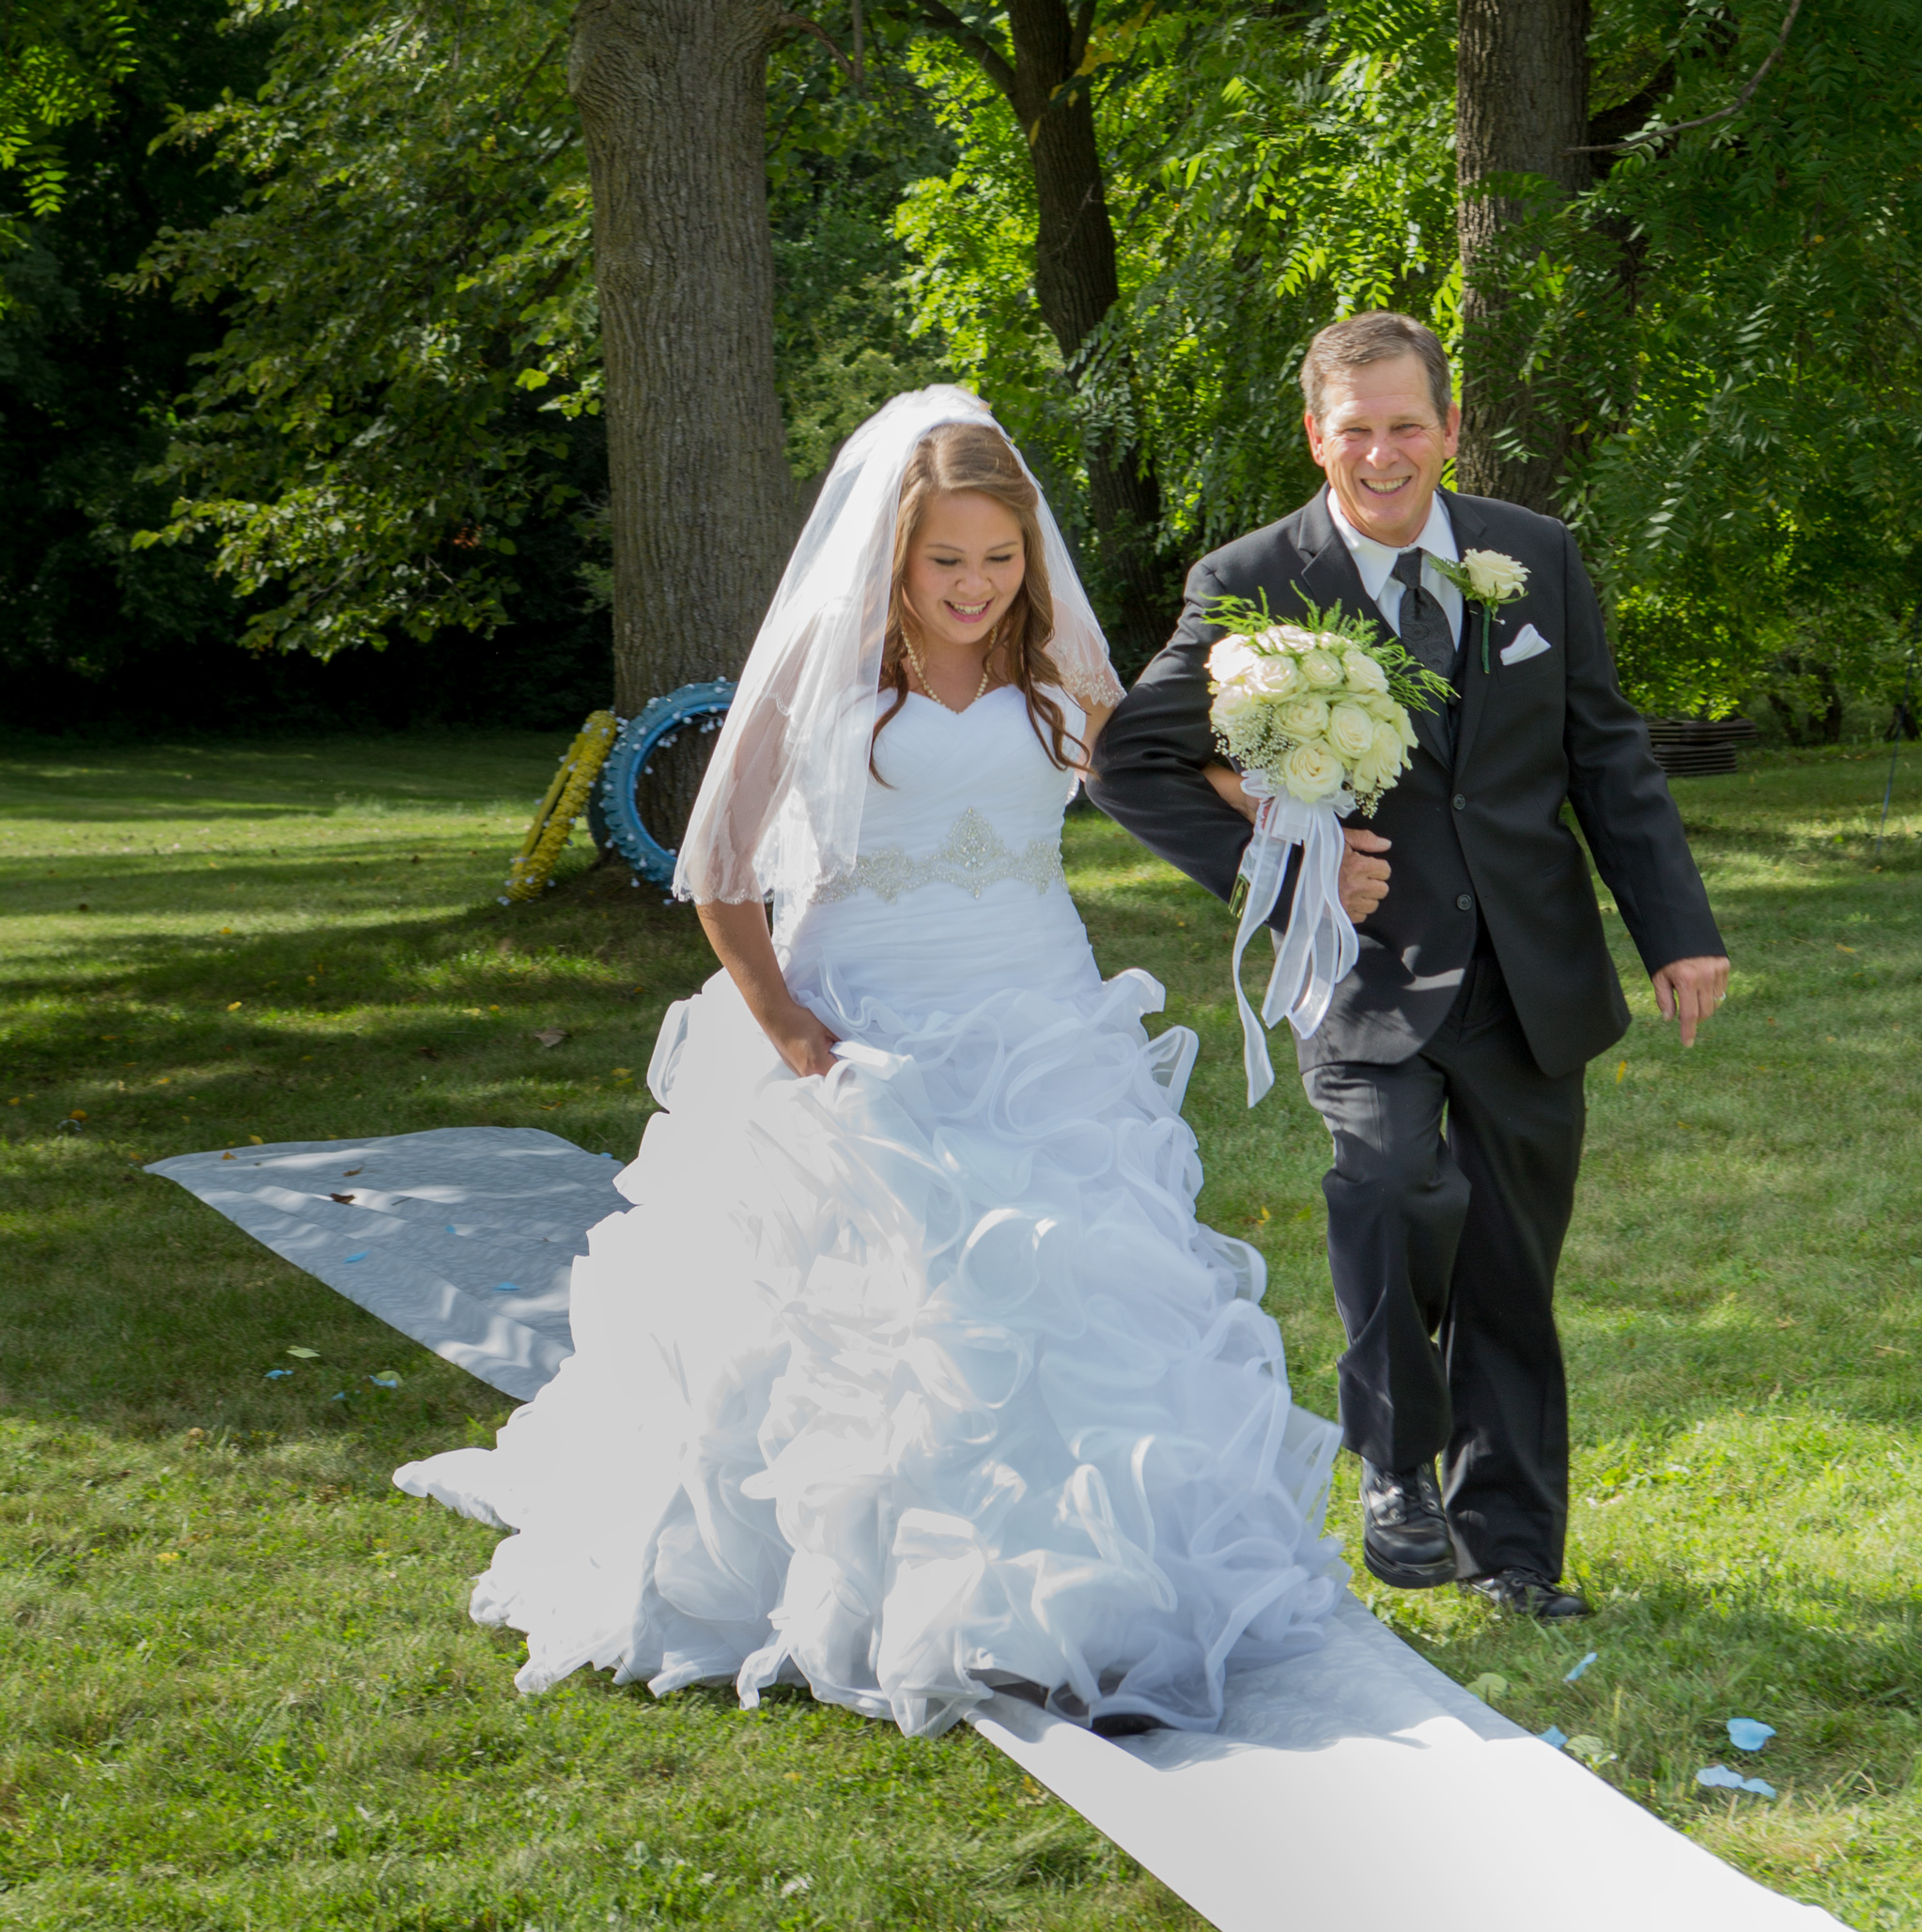 Annie_Matthew_barrington_wedding_outdoor_3.jpg